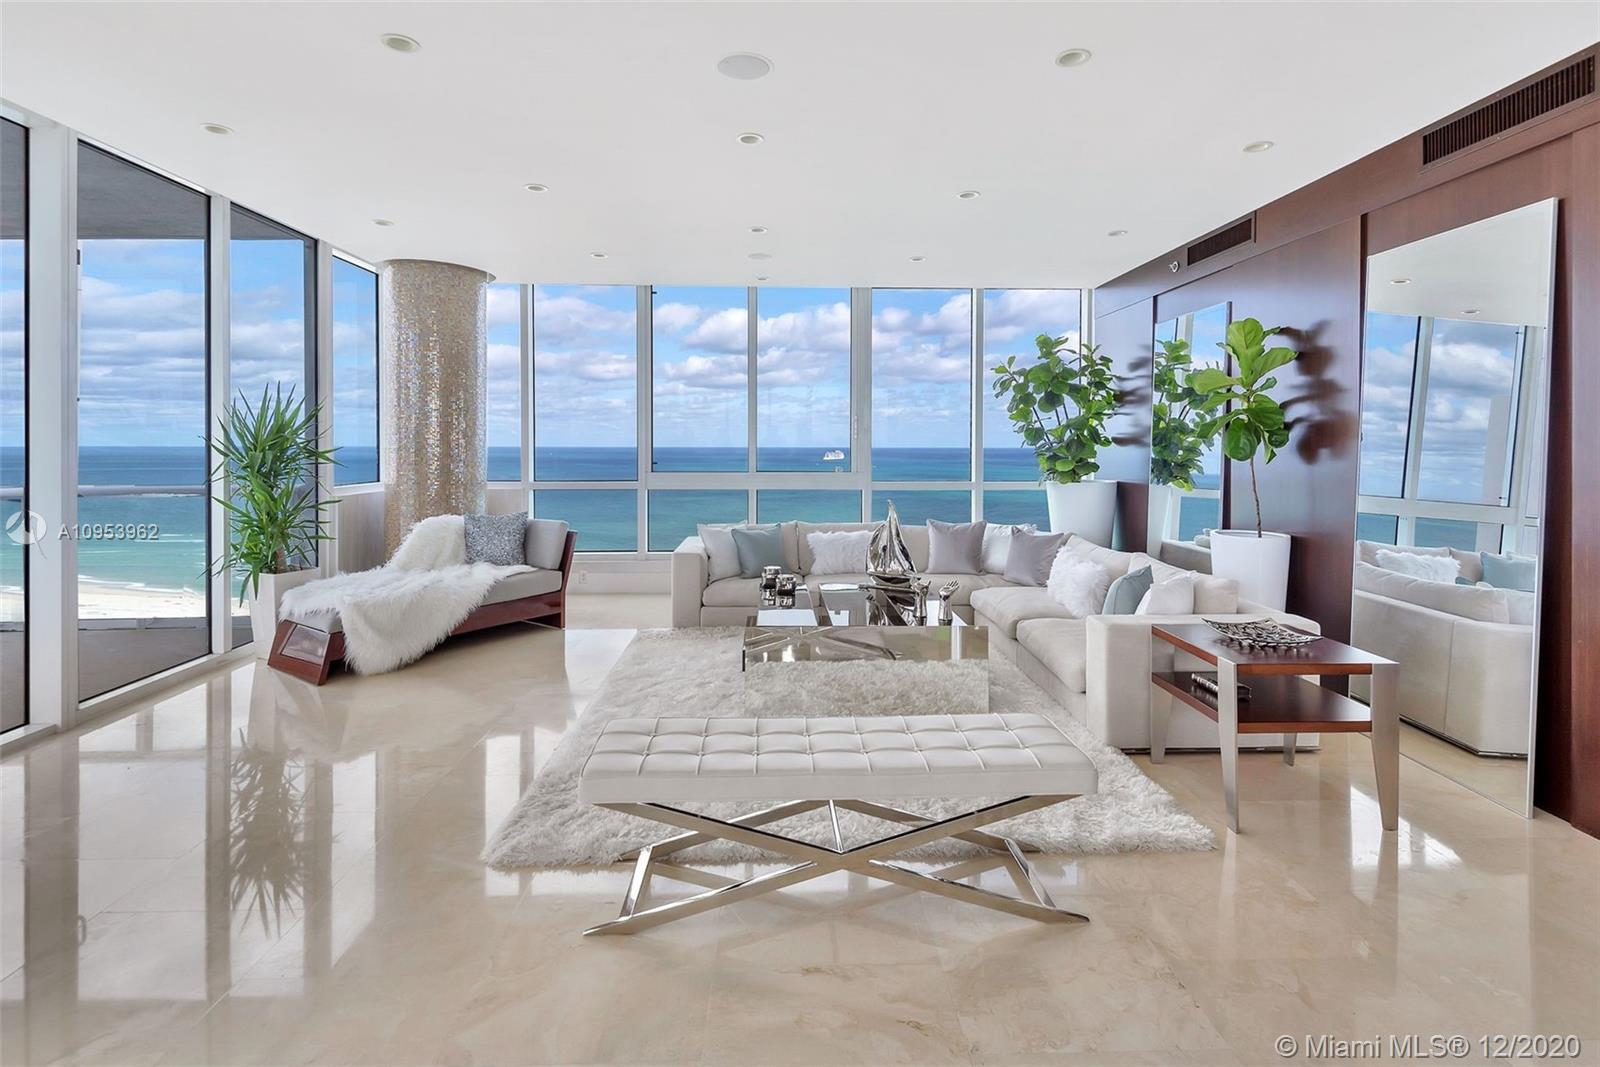 Continuum South #3307 - 100 S Pointe Dr #3307, Miami Beach, FL 33139